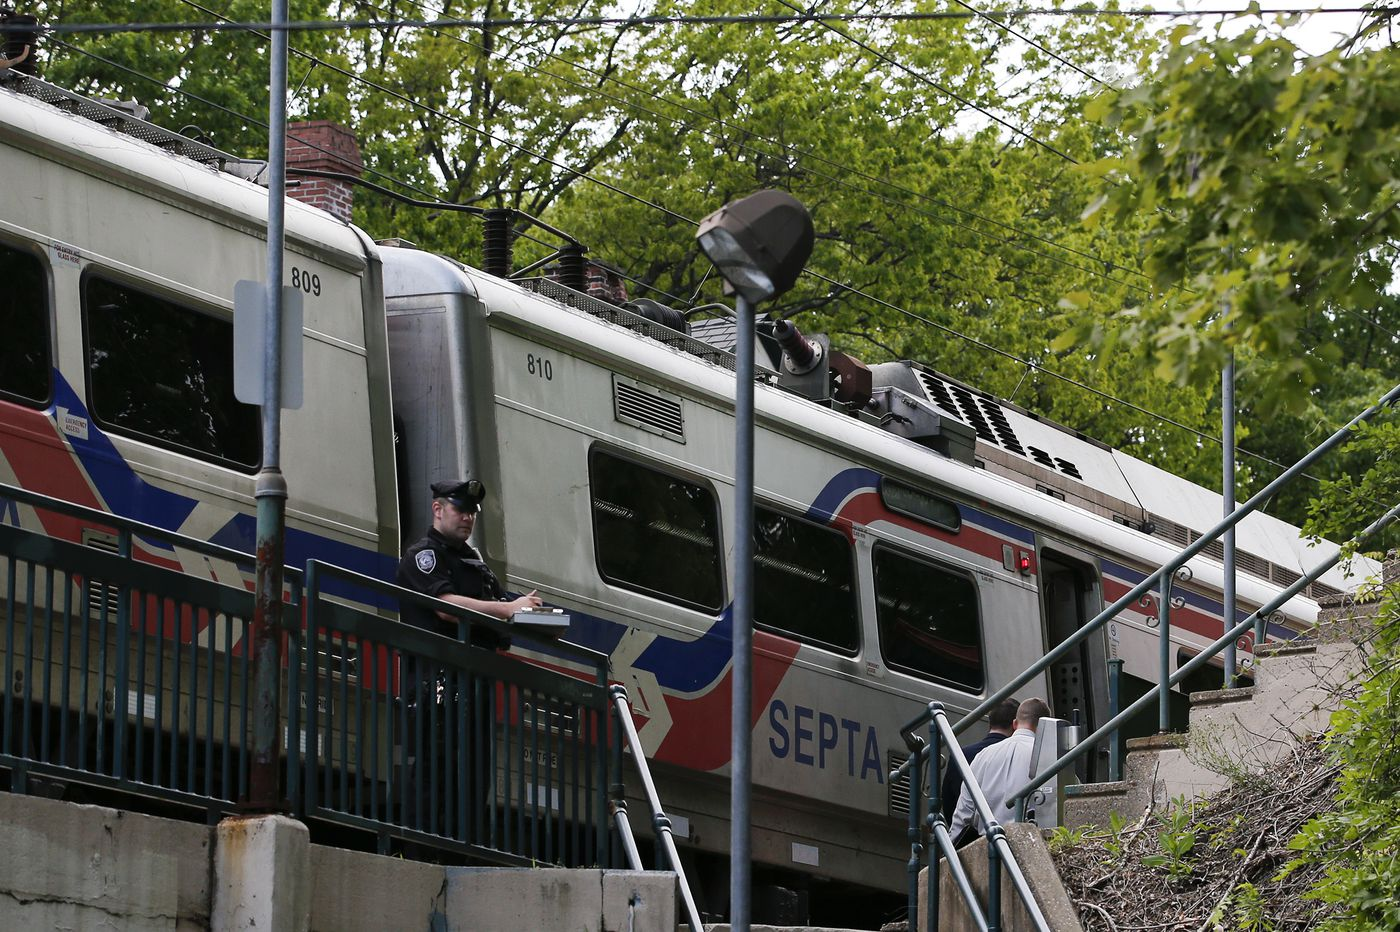 SEPTA conductor is shot in hip at Regional Rail stop in West Mount Airy